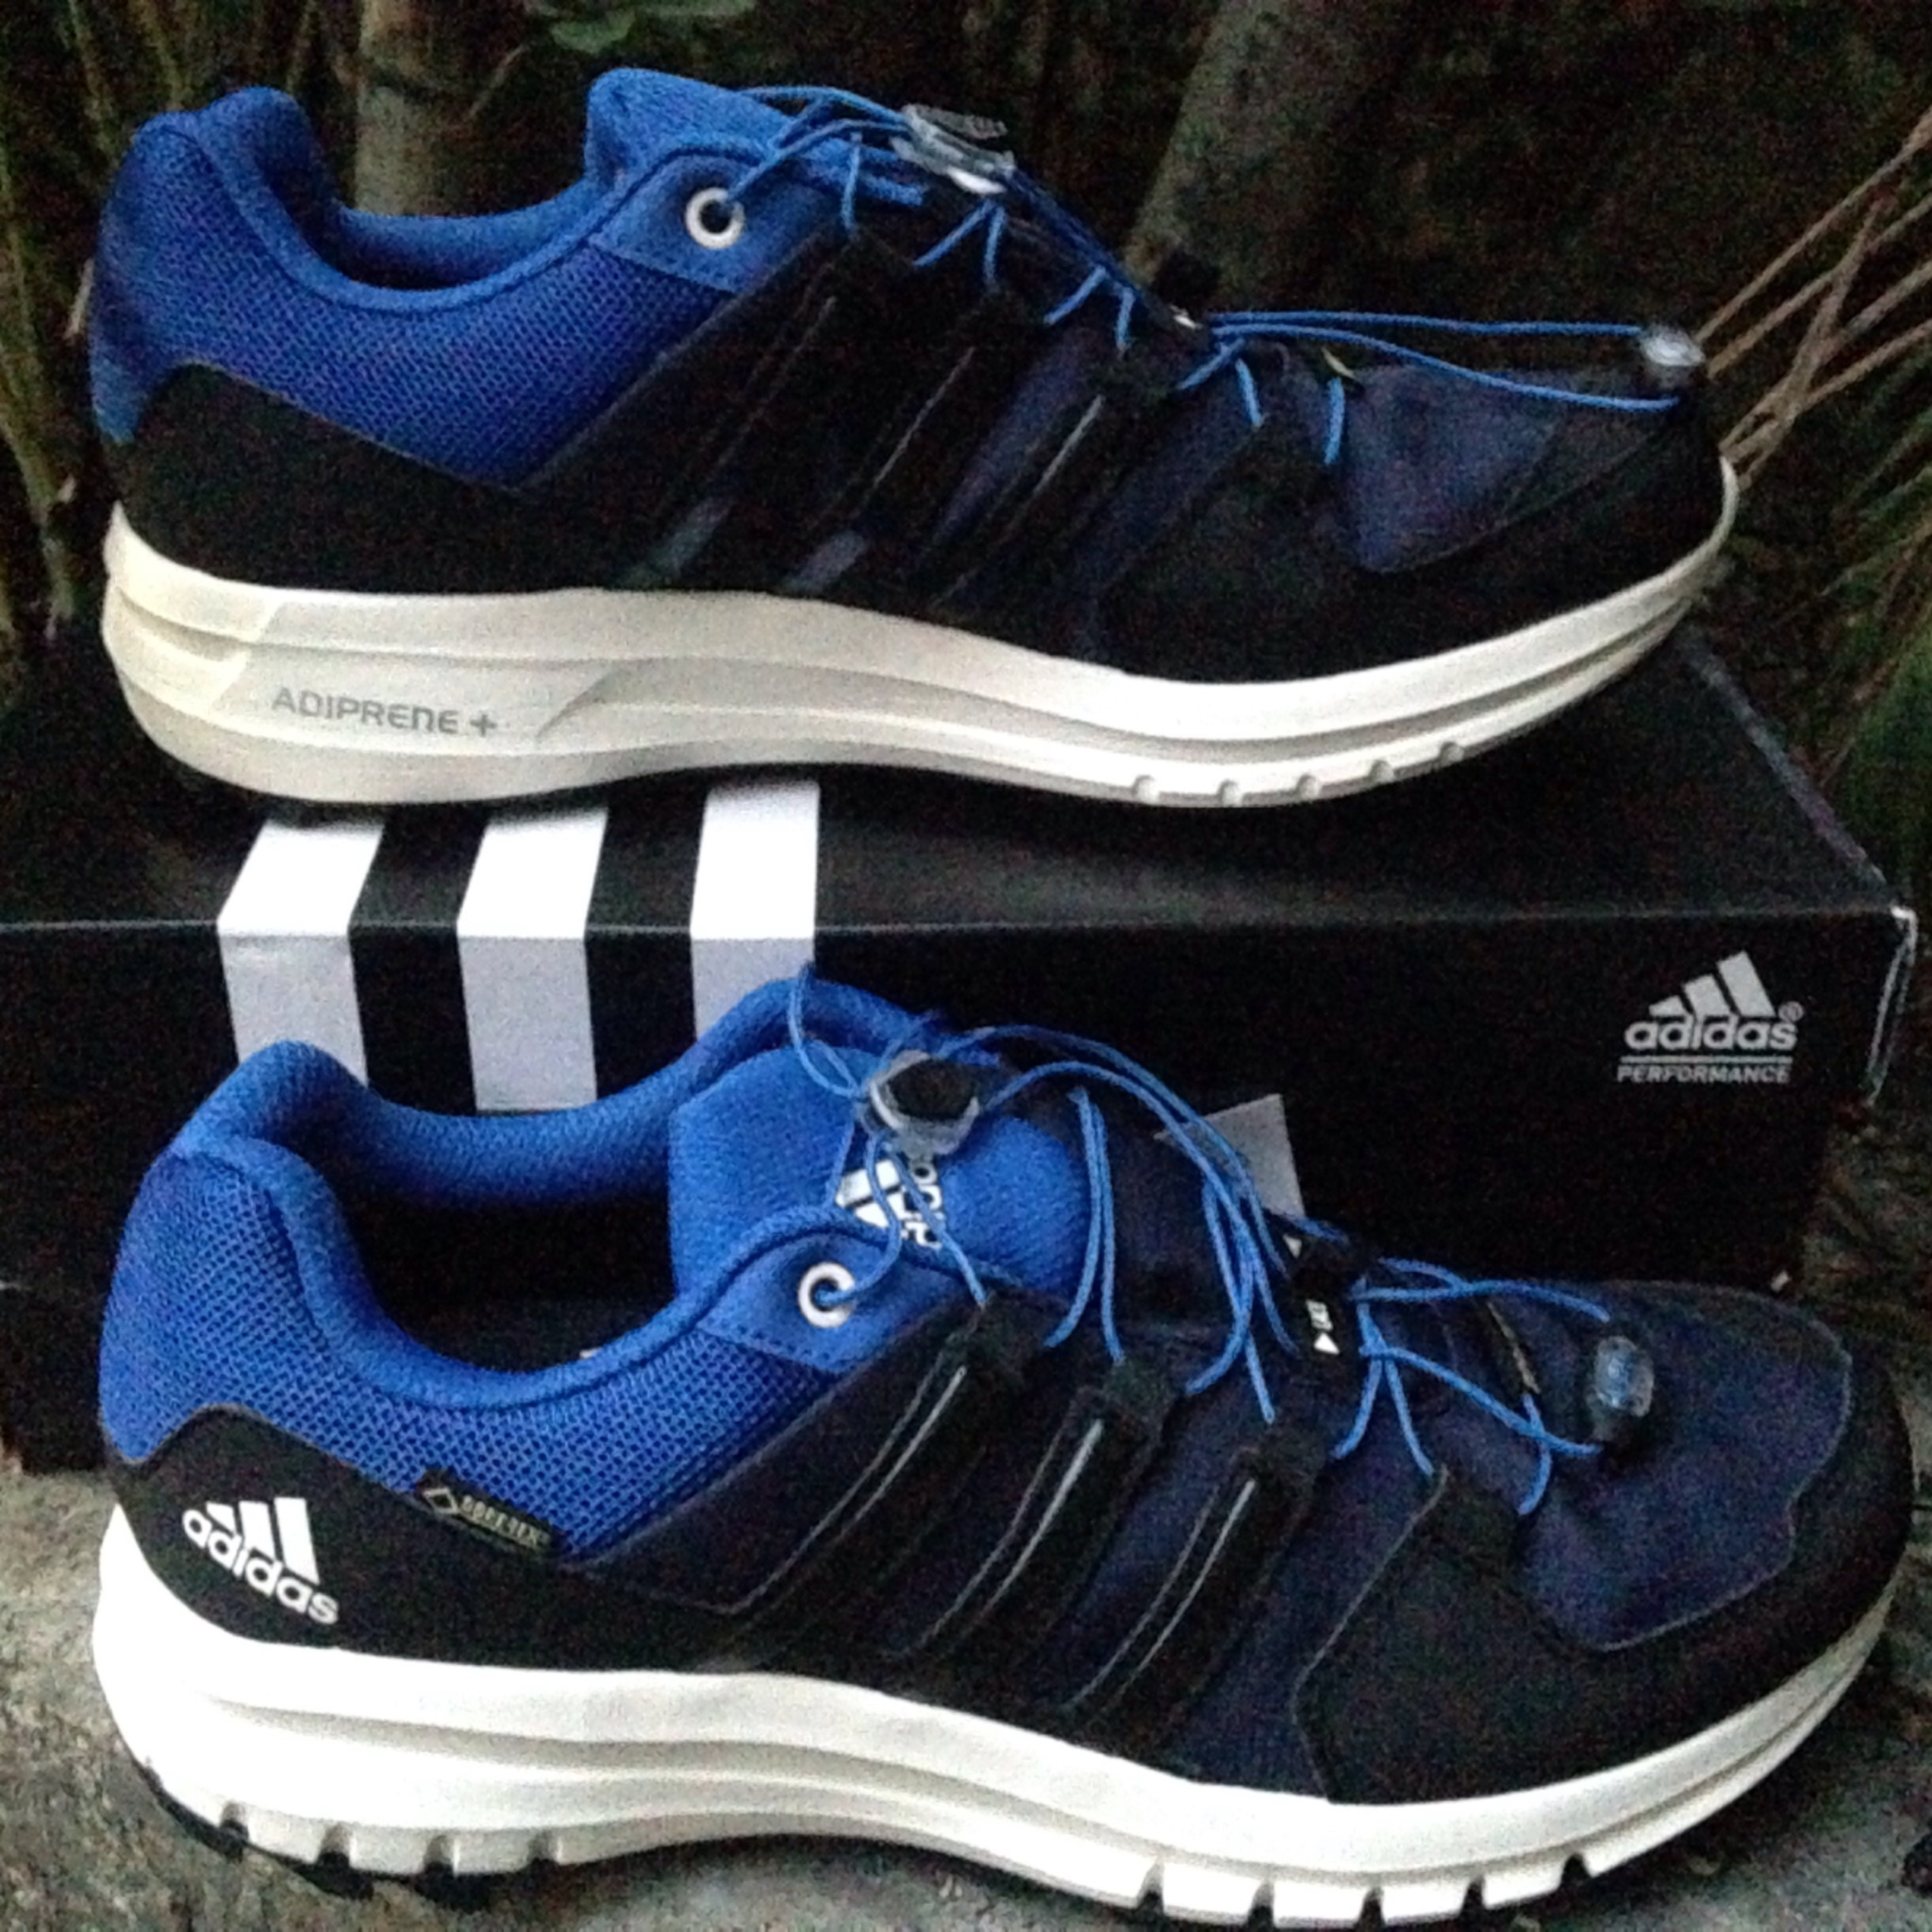 Adidas Duramo Cross X